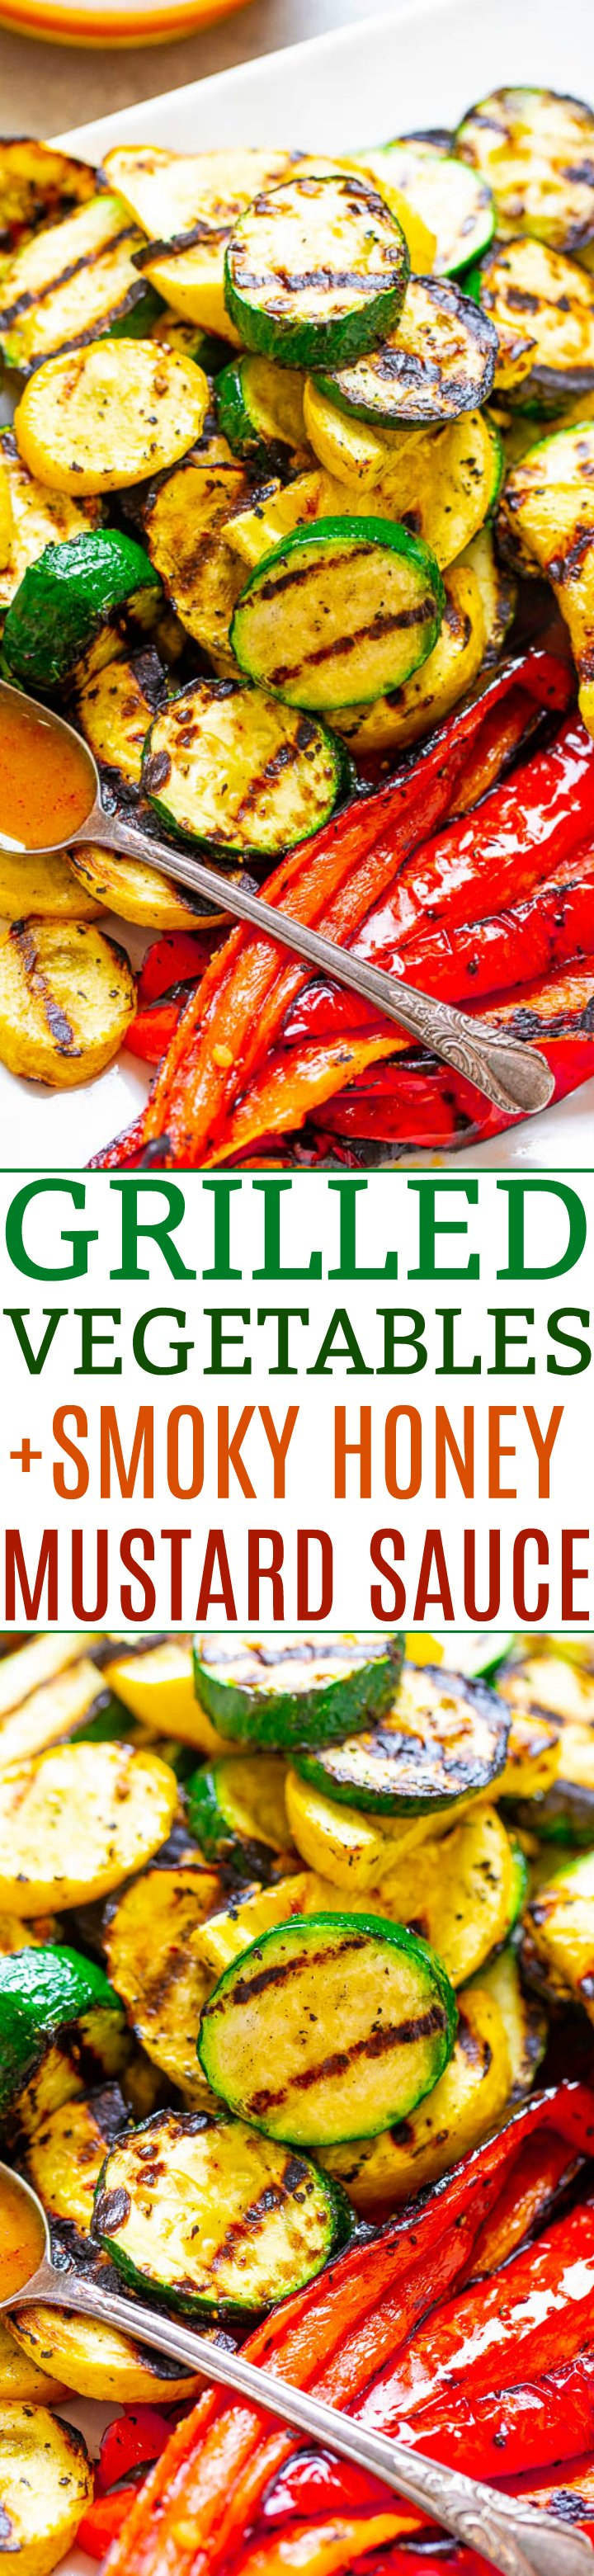 Grilled Vegetables With Smoky Honey Mustard Dipping Sauce -Grilling gives these simply prepared vegetables the perfect amount of smoky flavor and the dipping sauce accentuates that lovely smokiness!! Healthy, fast, EASY, zero cleanup, and ready in 5 minutes!!